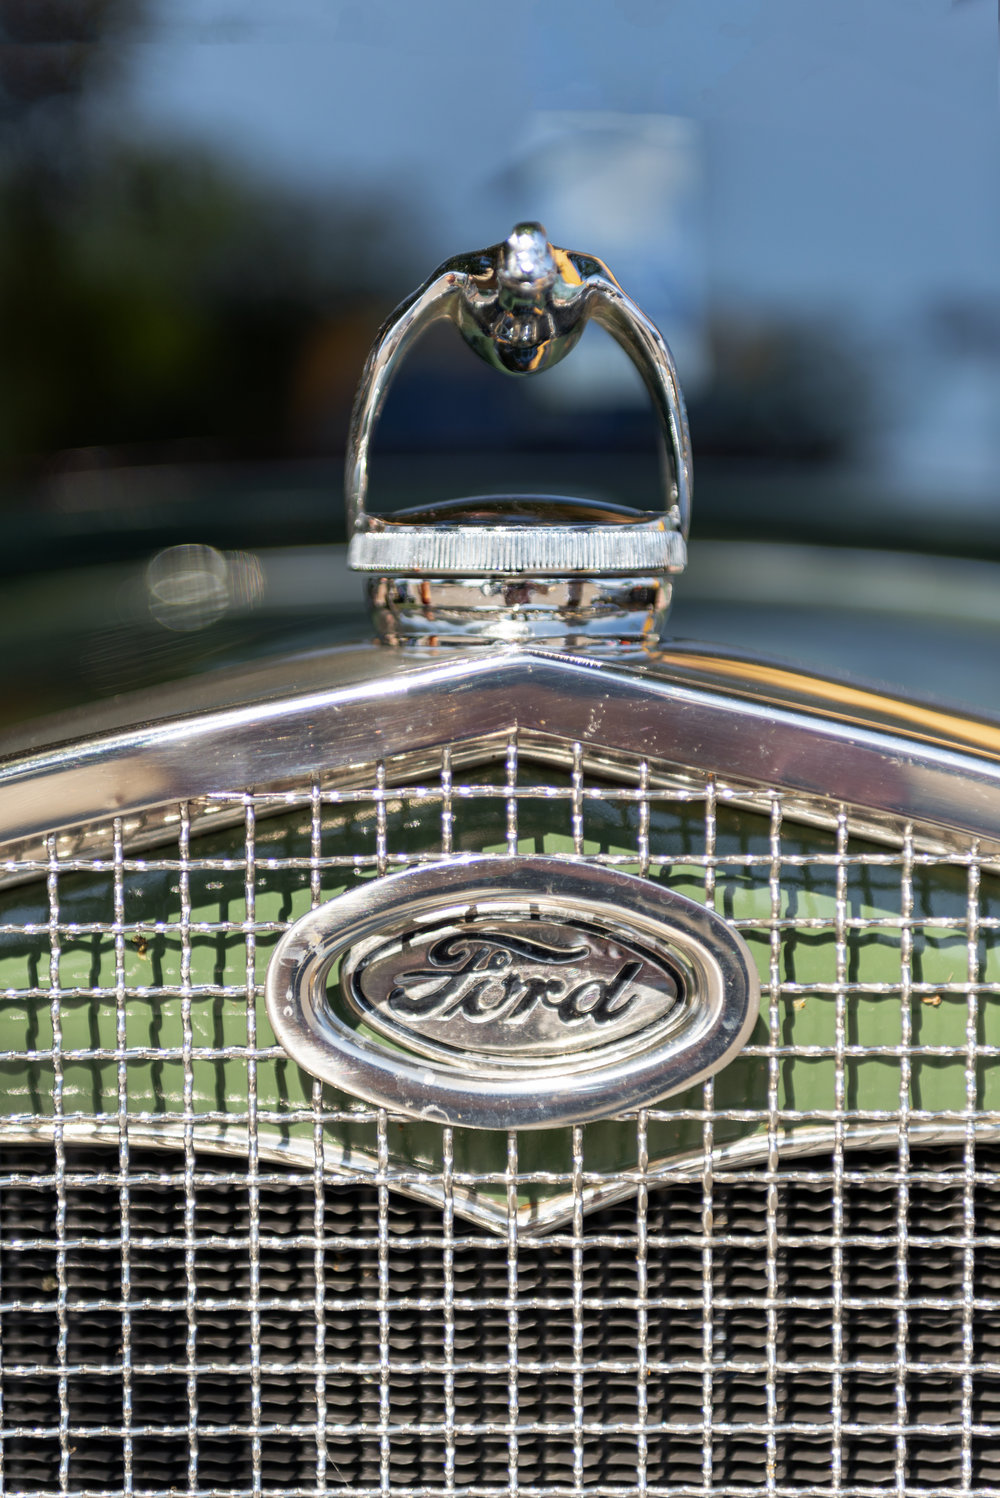 Ford Badge, Grill and Radiator Cap.